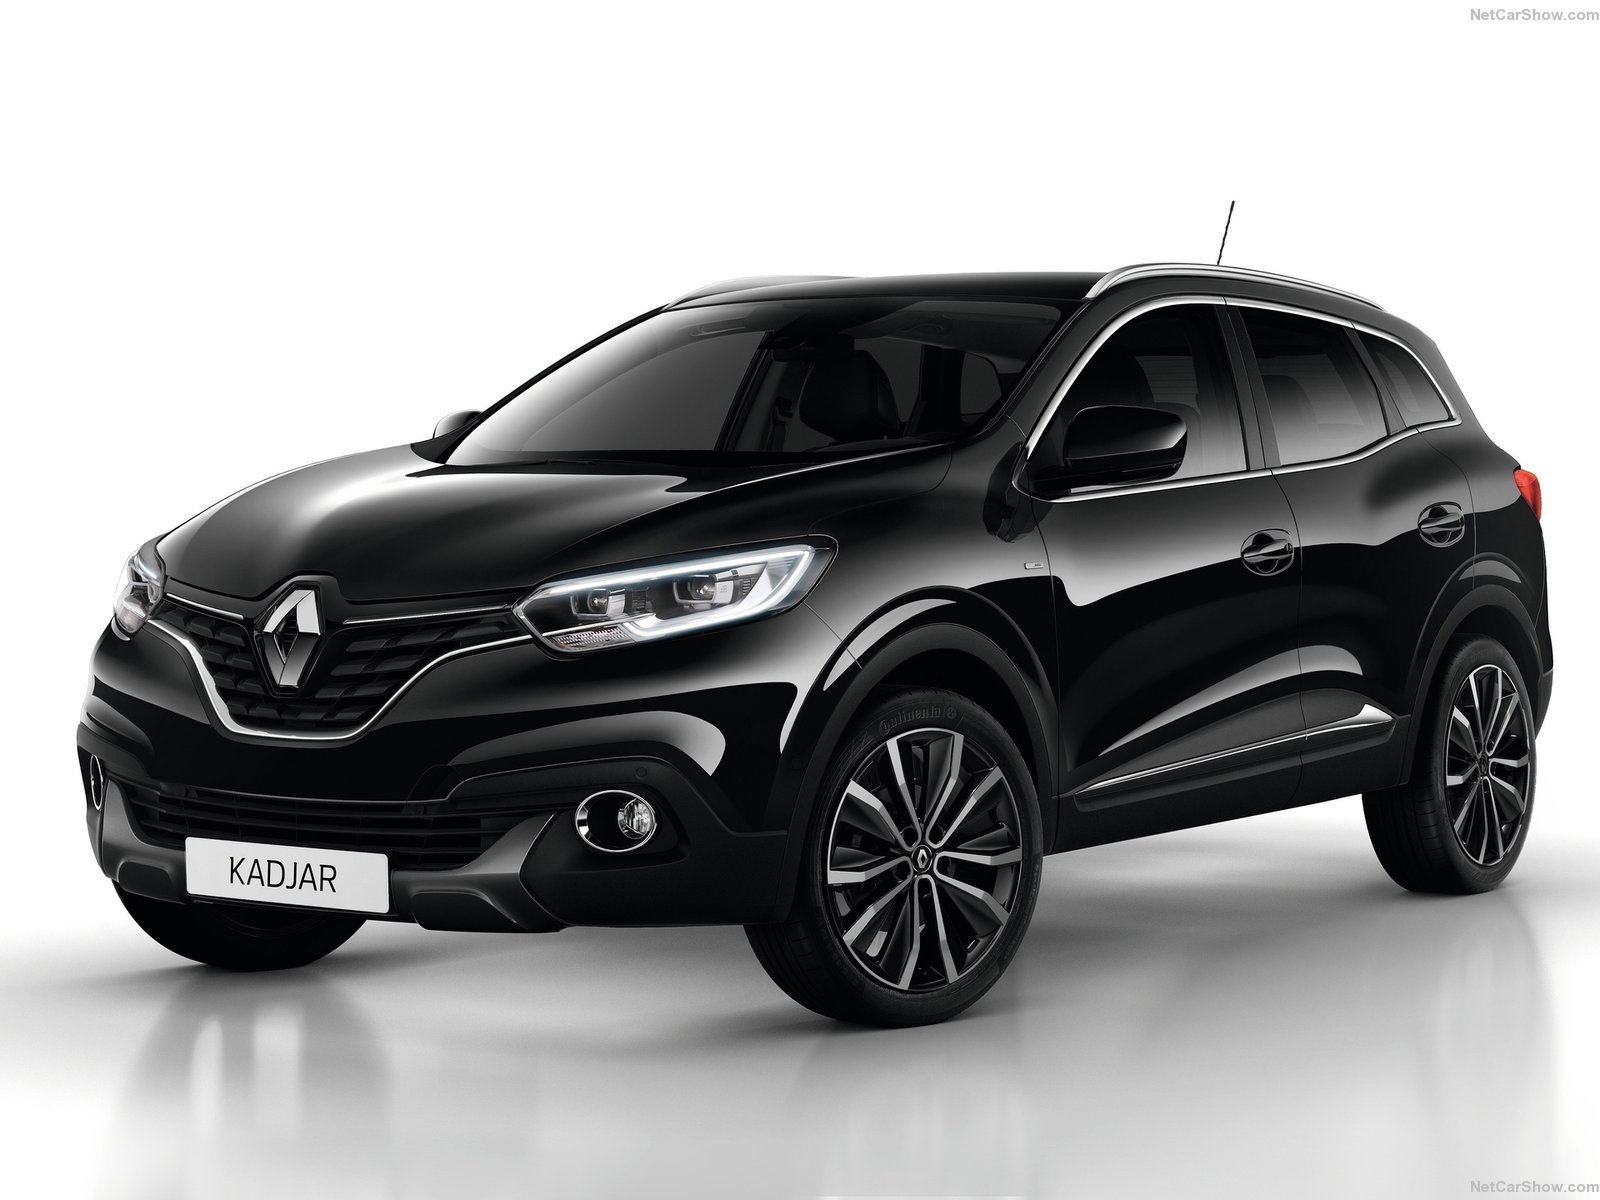 2016 cars french kadjar renault suv wallpaper 1600x1200 695745 wallpaperup. Black Bedroom Furniture Sets. Home Design Ideas